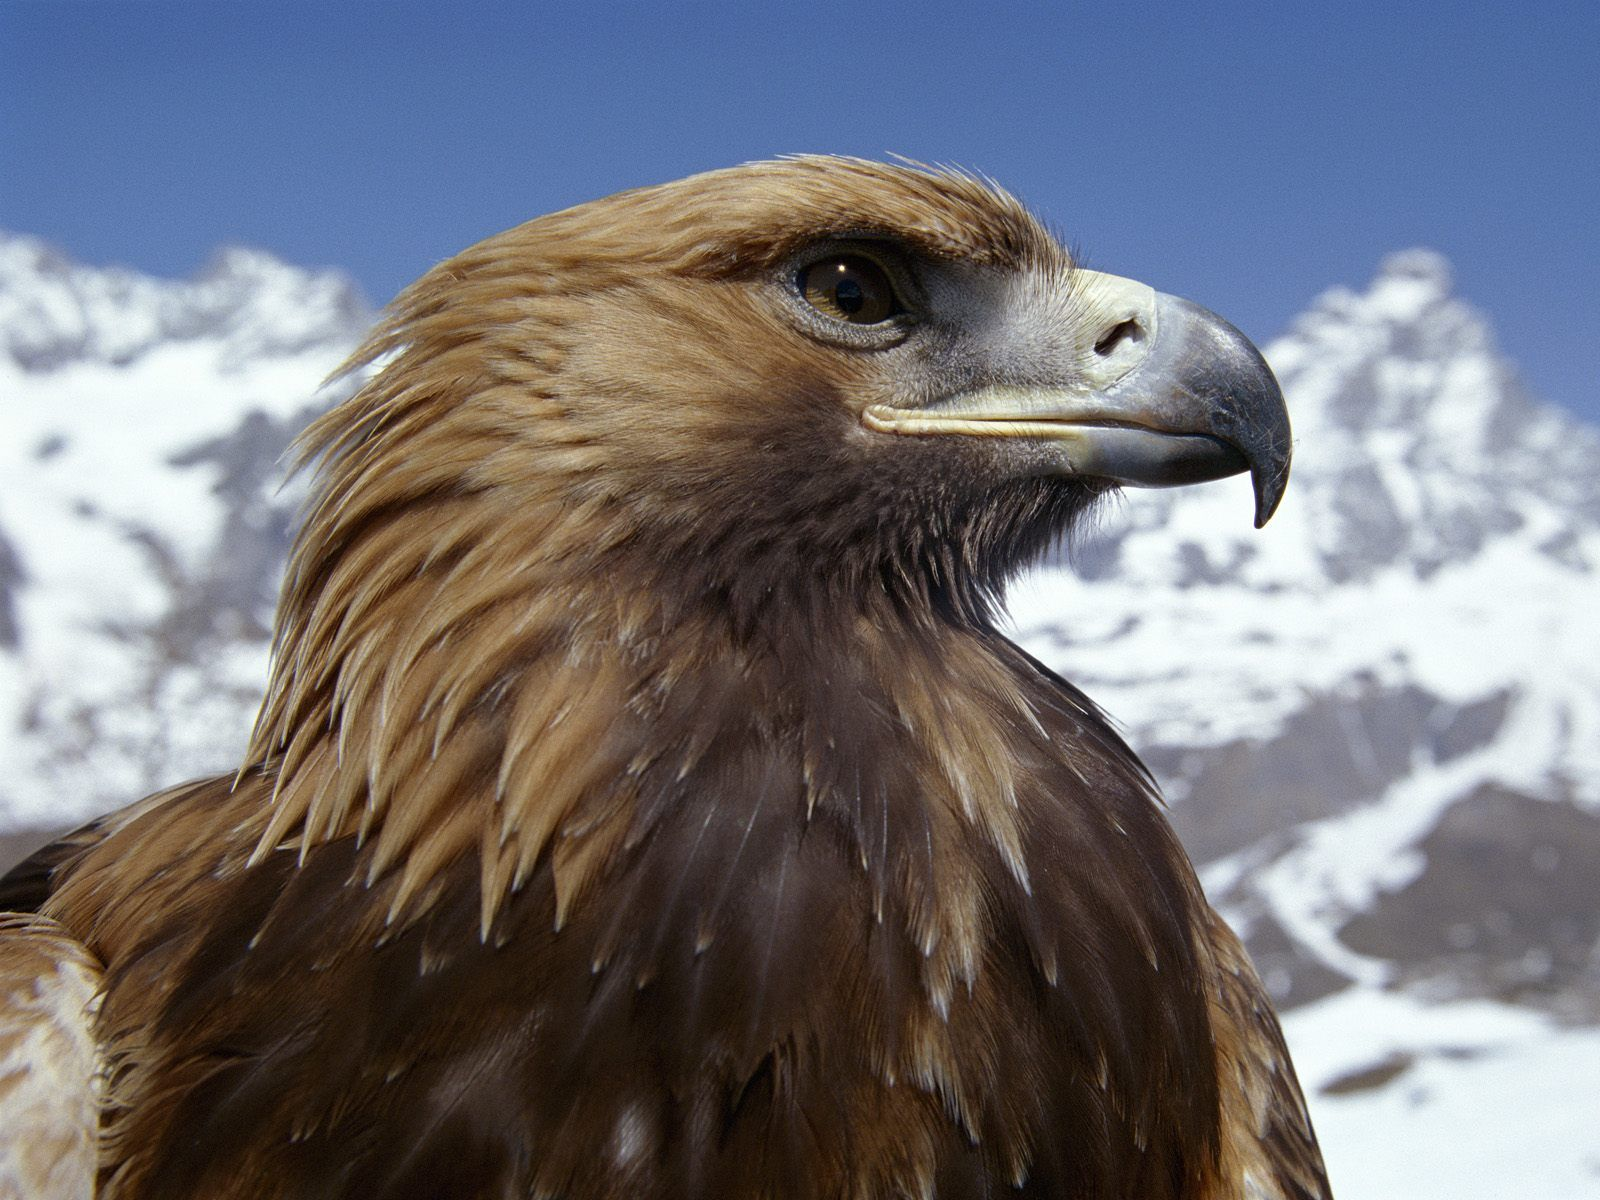 golden eagle Find great deals on ebay for golden eagle in compound bows shop with confidence.